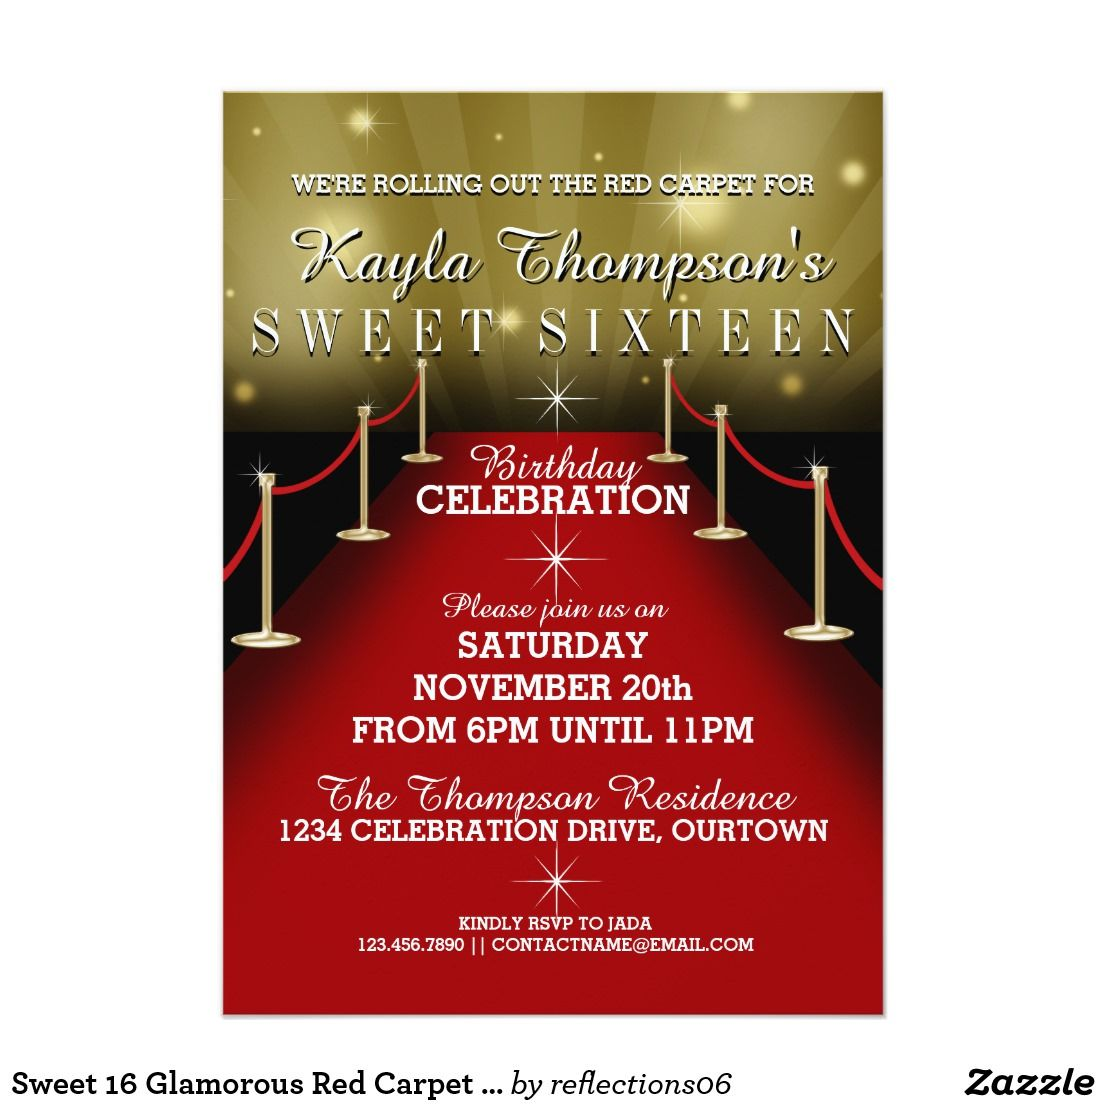 Sweet 16 glamorous red carpet party invitations fabulous red sweet 16 glamorous red carpet party invitations fabulous red carpet party invitations for her big day monicamarmolfo Image collections